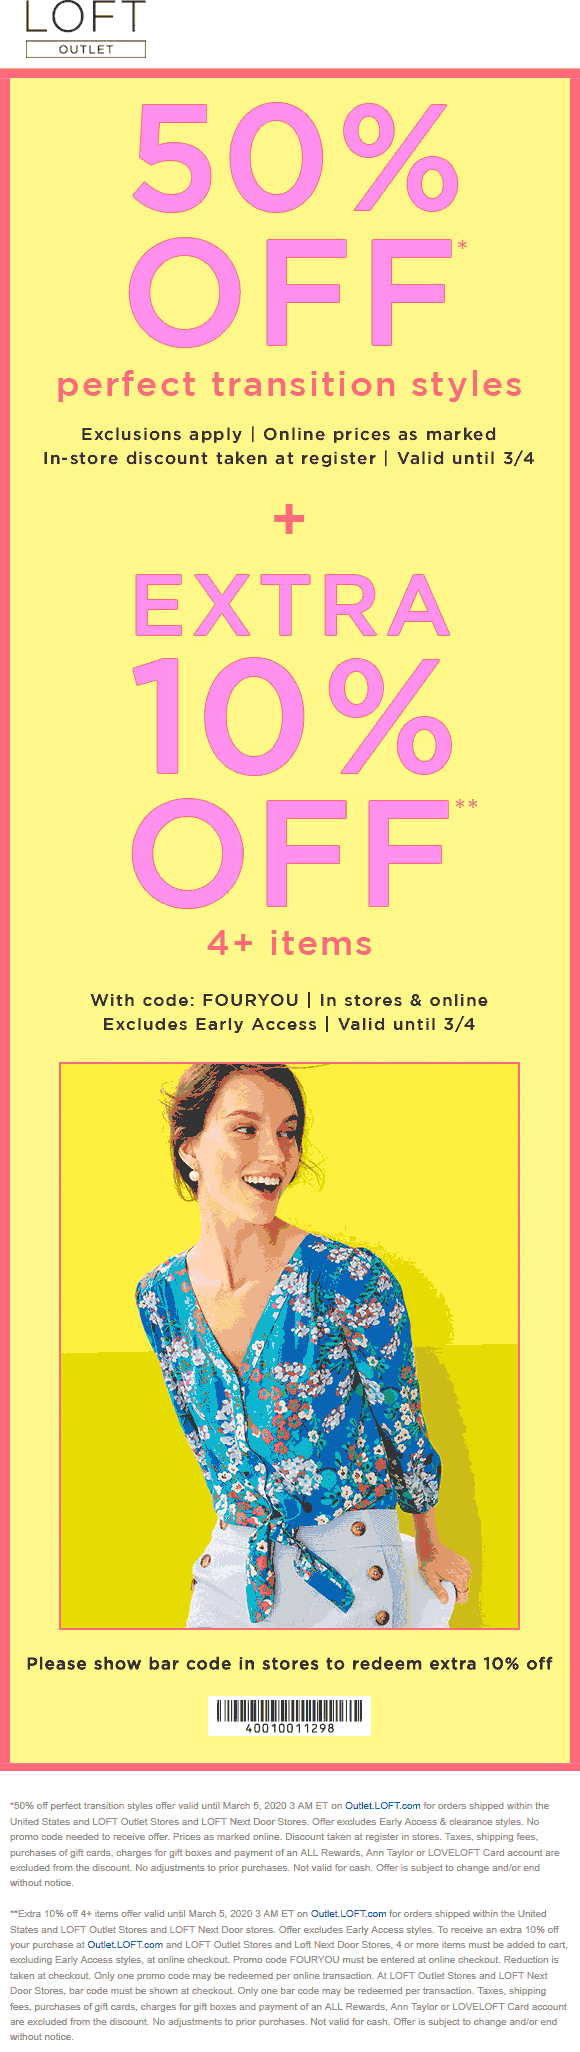 LOFT Outlet coupons & promo code for [August 2020]